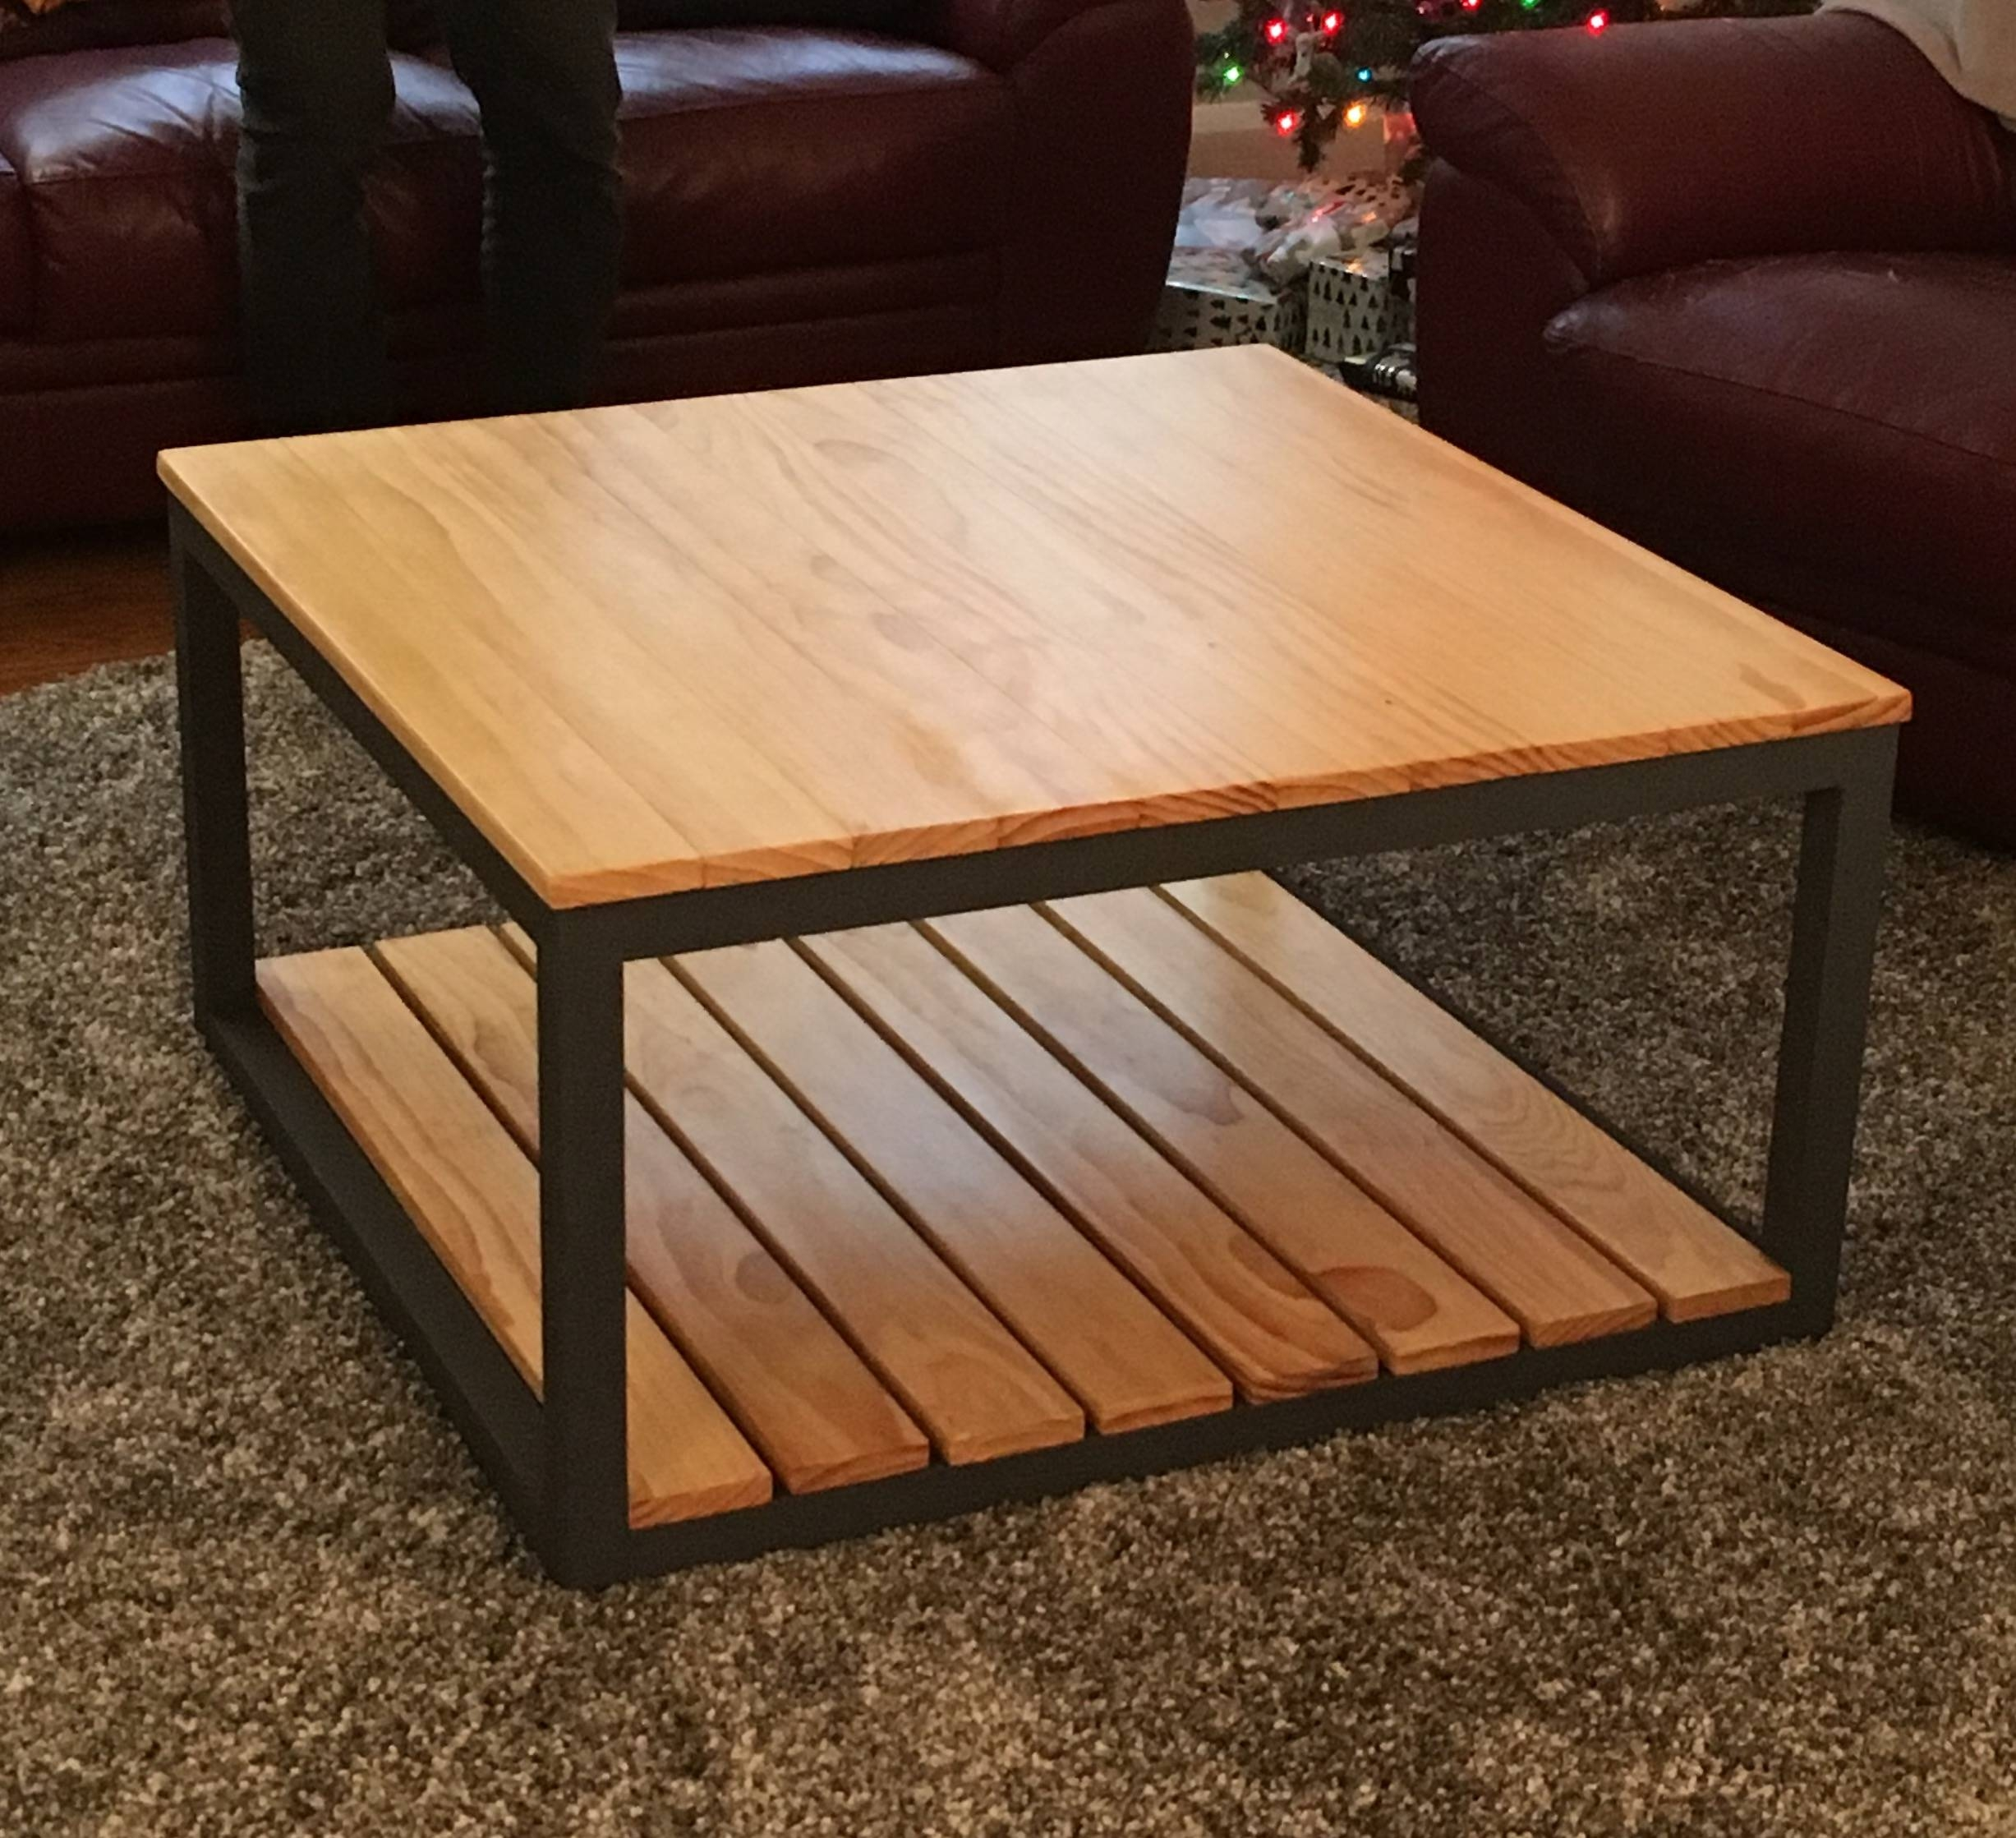 Ana White | Modified Industrial Style Coffee Table W/ Bottom Shelf pertaining to Coffee Table Industrial Style (Image 4 of 30)